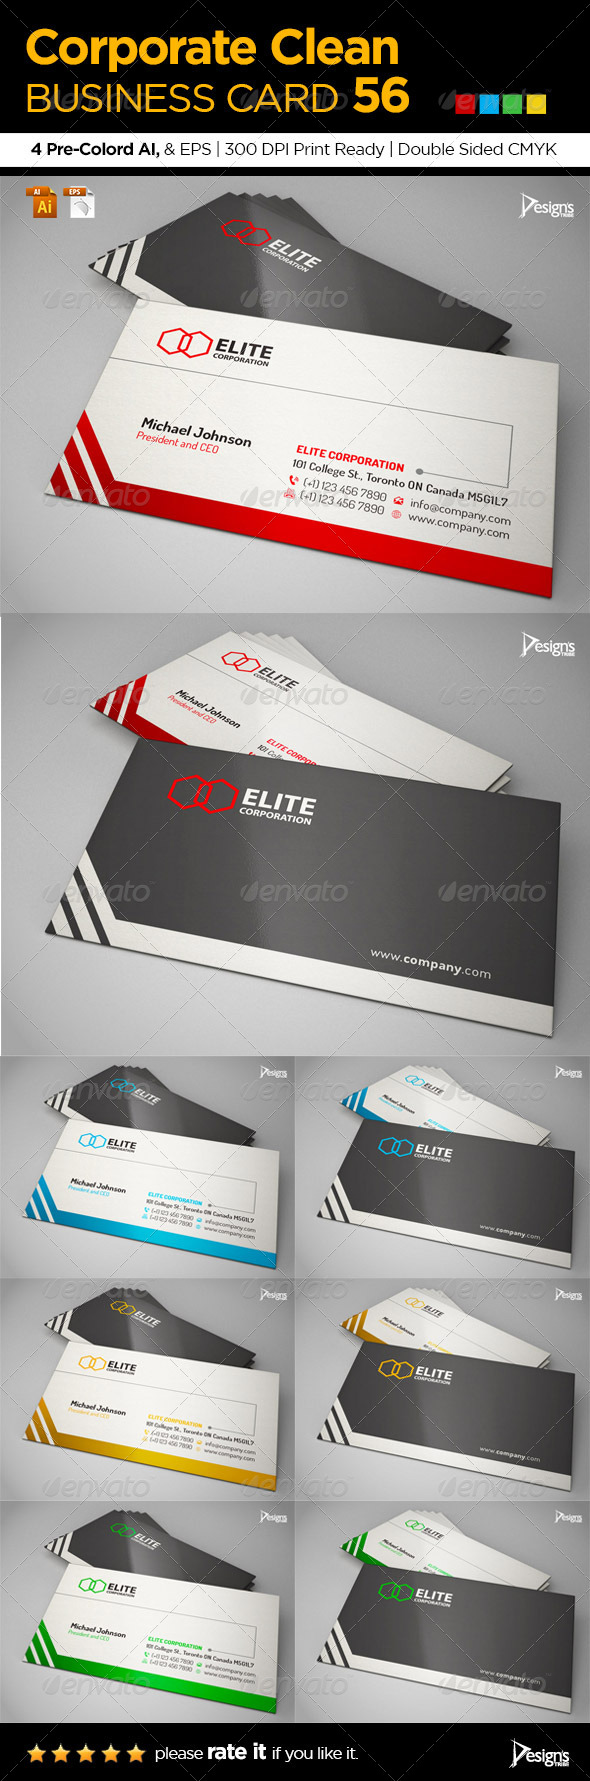 Corporate Clean Business Card 56 - Business Cards Print Templates